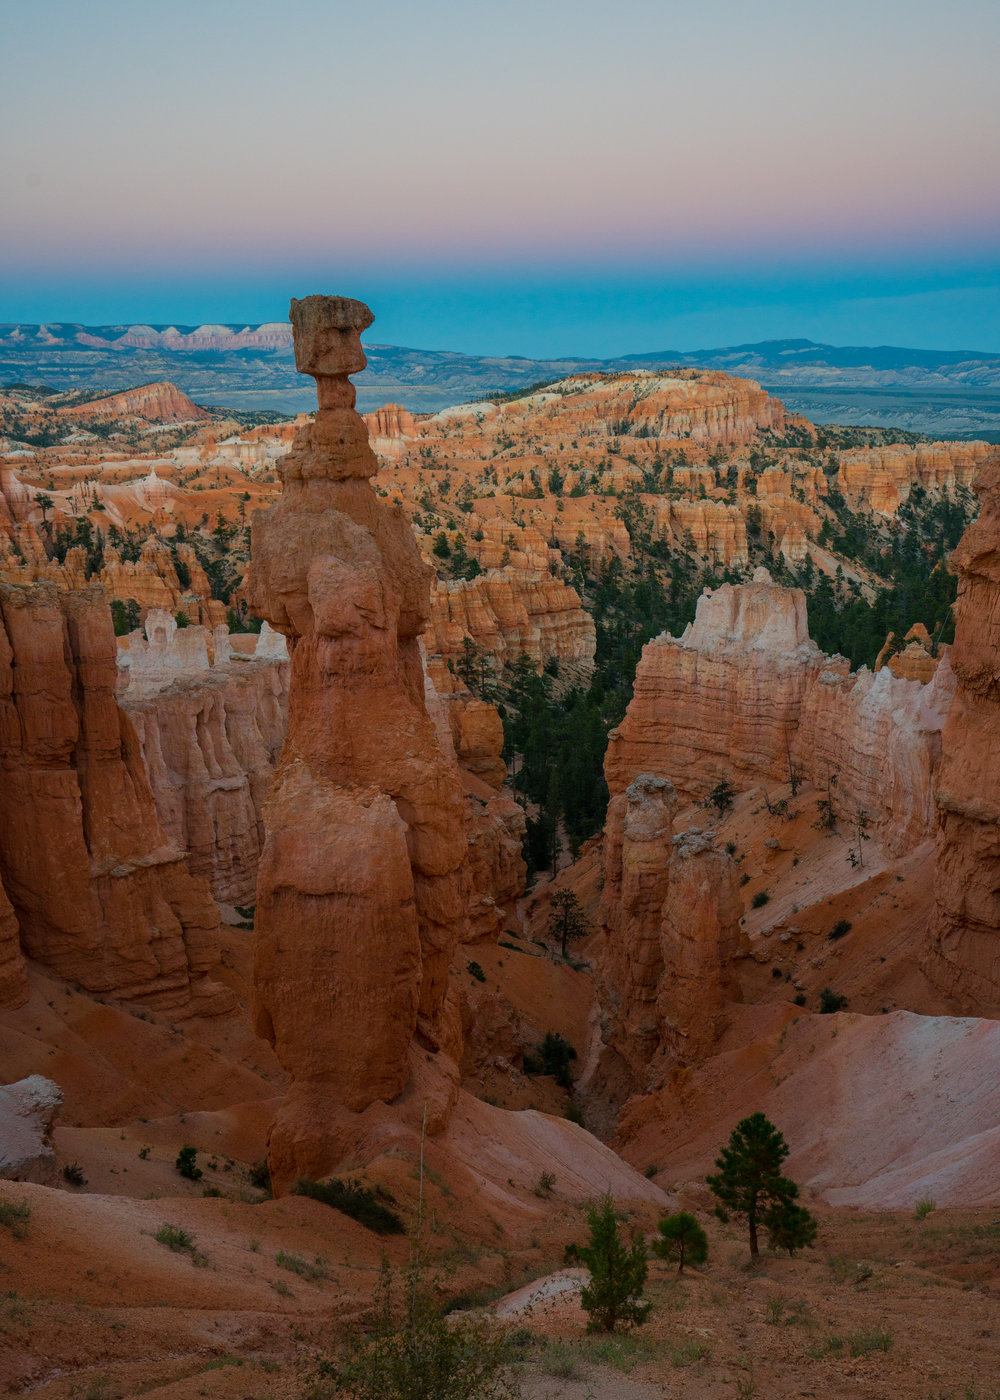 Thor's Hammer in Bryce Canyon National Park. Mature Ponderosa pine at bottom right for size reference. Earth's shadow visible in the fading sunlight.